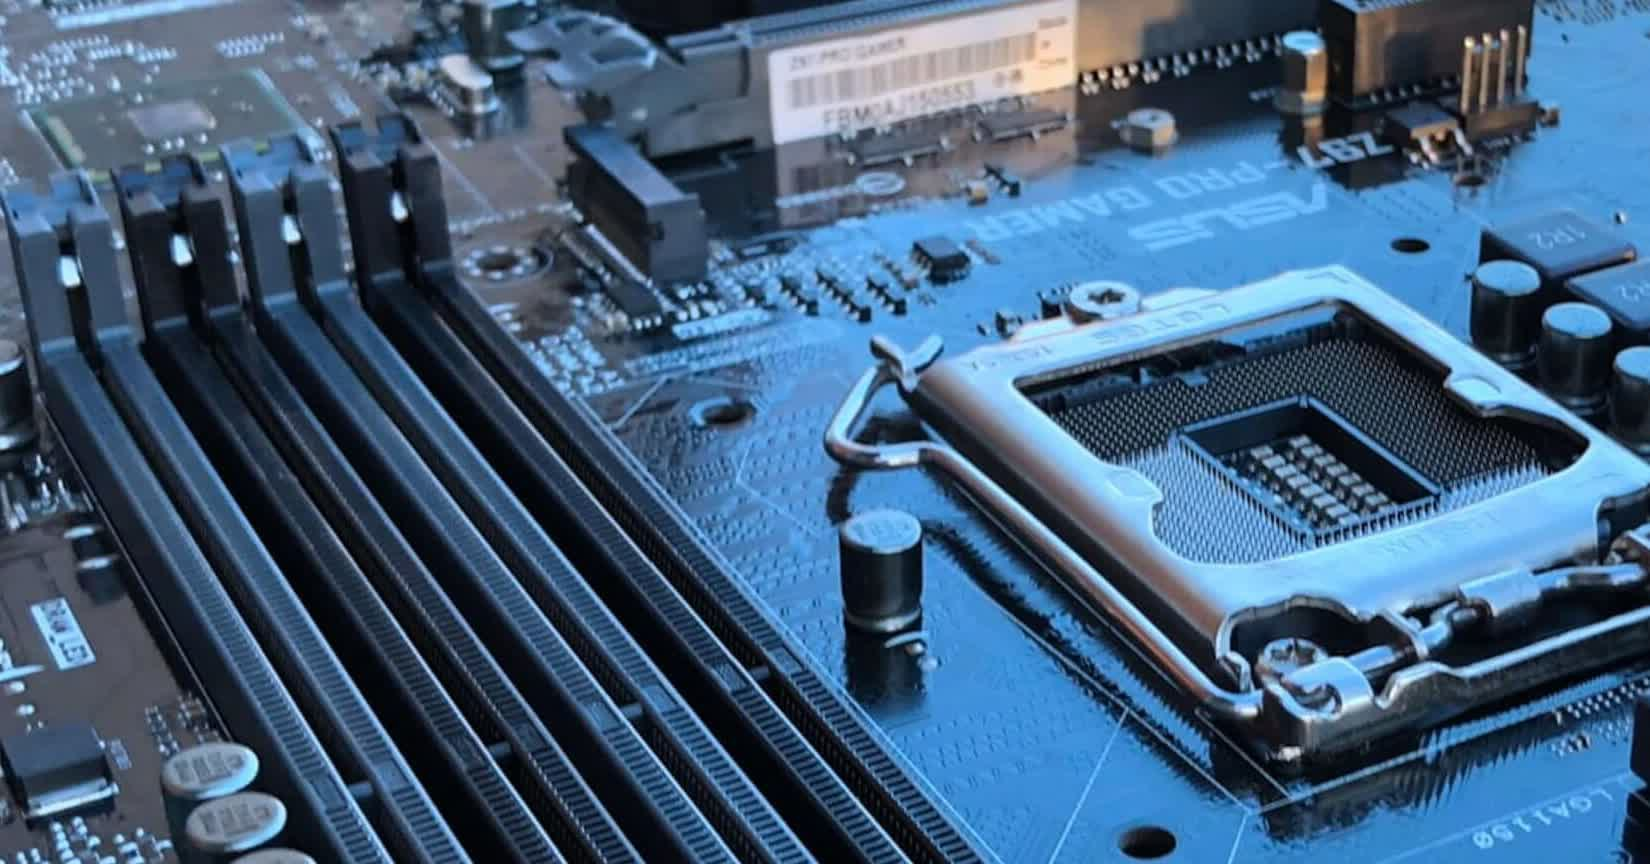 Final PCIe 6.0 draft specification released, full version could be only months away